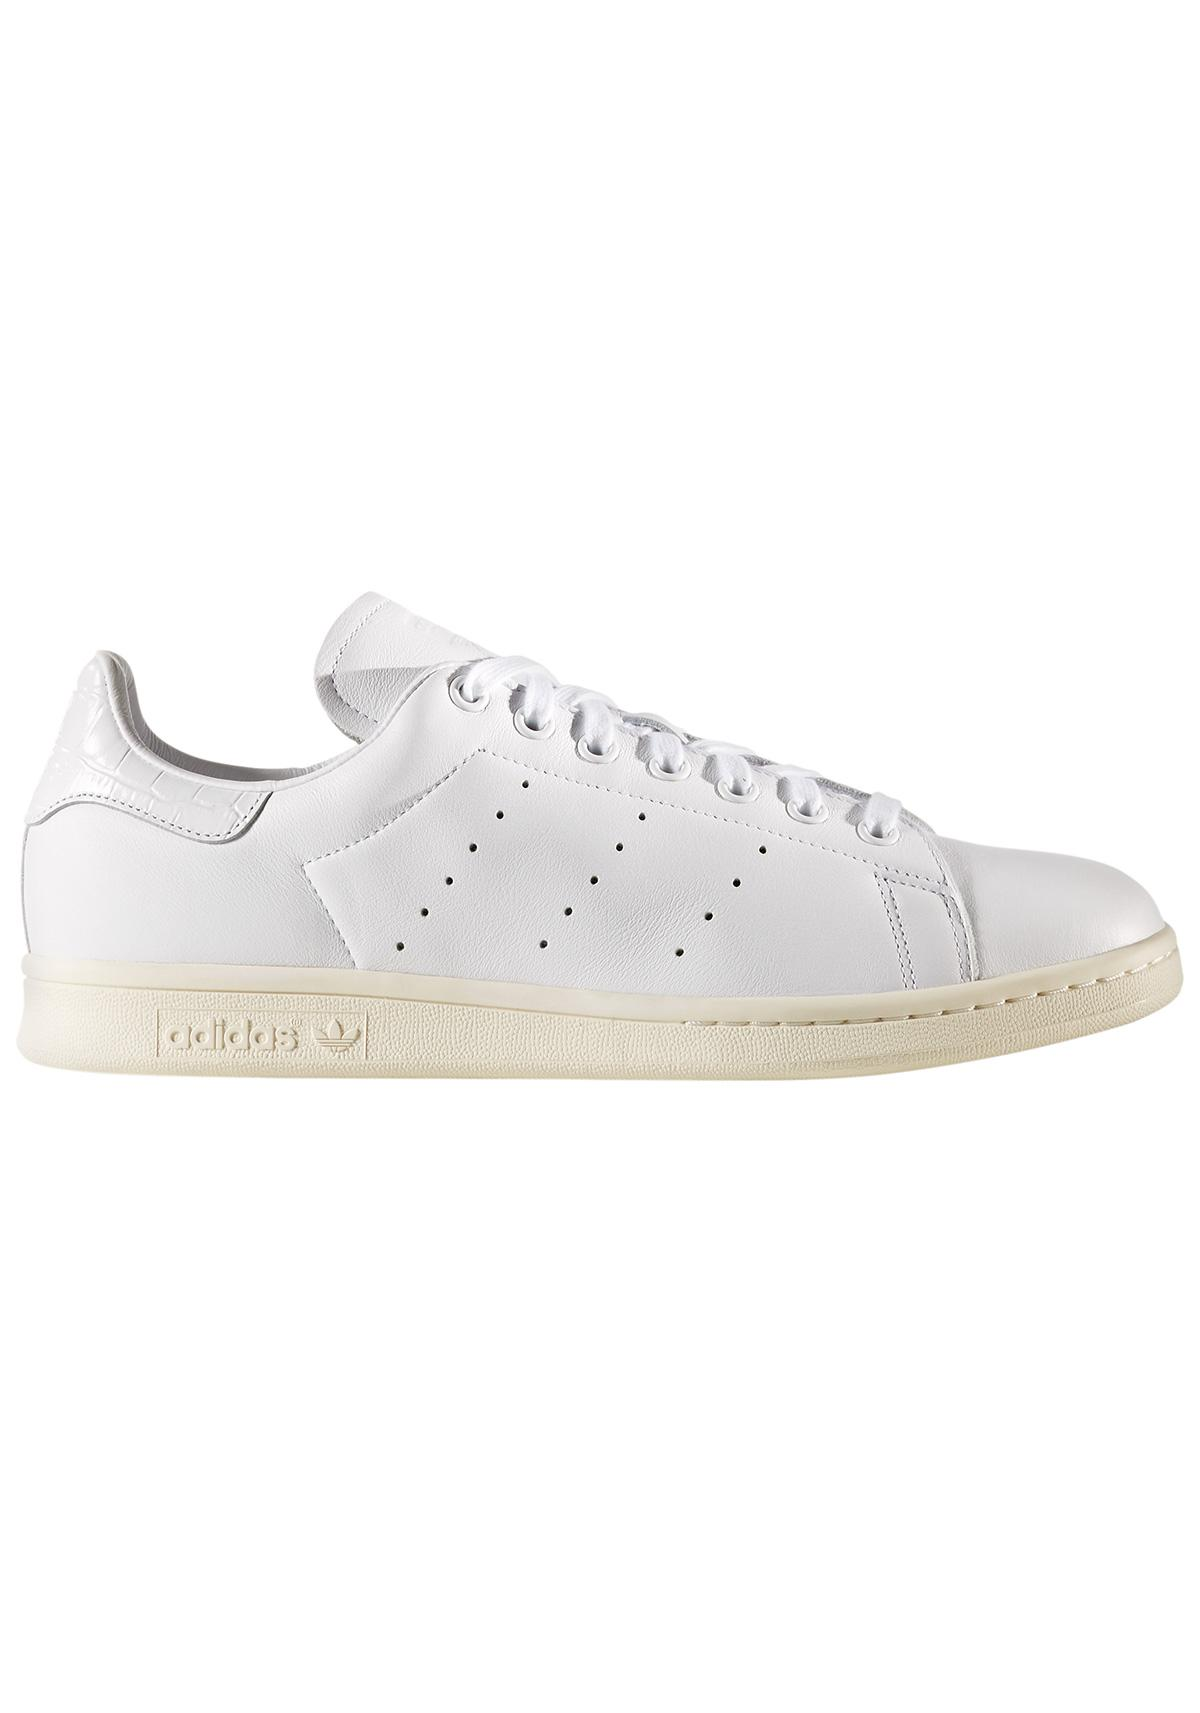 w schuh adidas stan smith gr e 38 farbe weiss. Black Bedroom Furniture Sets. Home Design Ideas